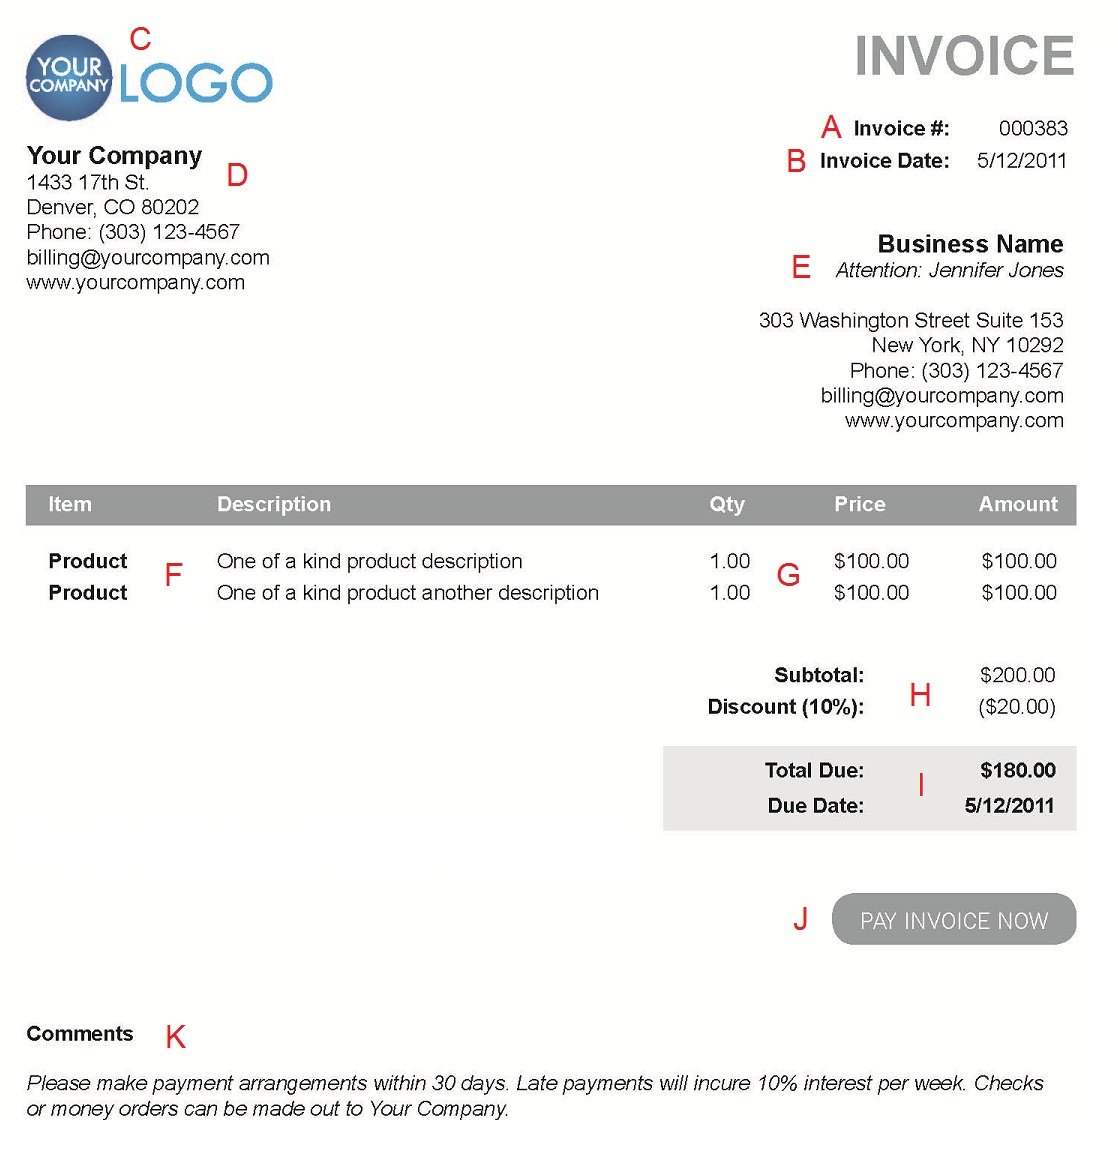 Coolmathgamesus  Wonderful The  Different Sections Of An Electronic Payment Invoice With Engaging A  With Breathtaking Word Invoice Templates Free Download Also Invoice Finance Definition In Addition Scan Invoice And Invoice Sale As Well As Invoice For Excel Additionally How To Get Invoice Price Of Car From Paysimplecom With Coolmathgamesus  Engaging The  Different Sections Of An Electronic Payment Invoice With Breathtaking A  And Wonderful Word Invoice Templates Free Download Also Invoice Finance Definition In Addition Scan Invoice From Paysimplecom